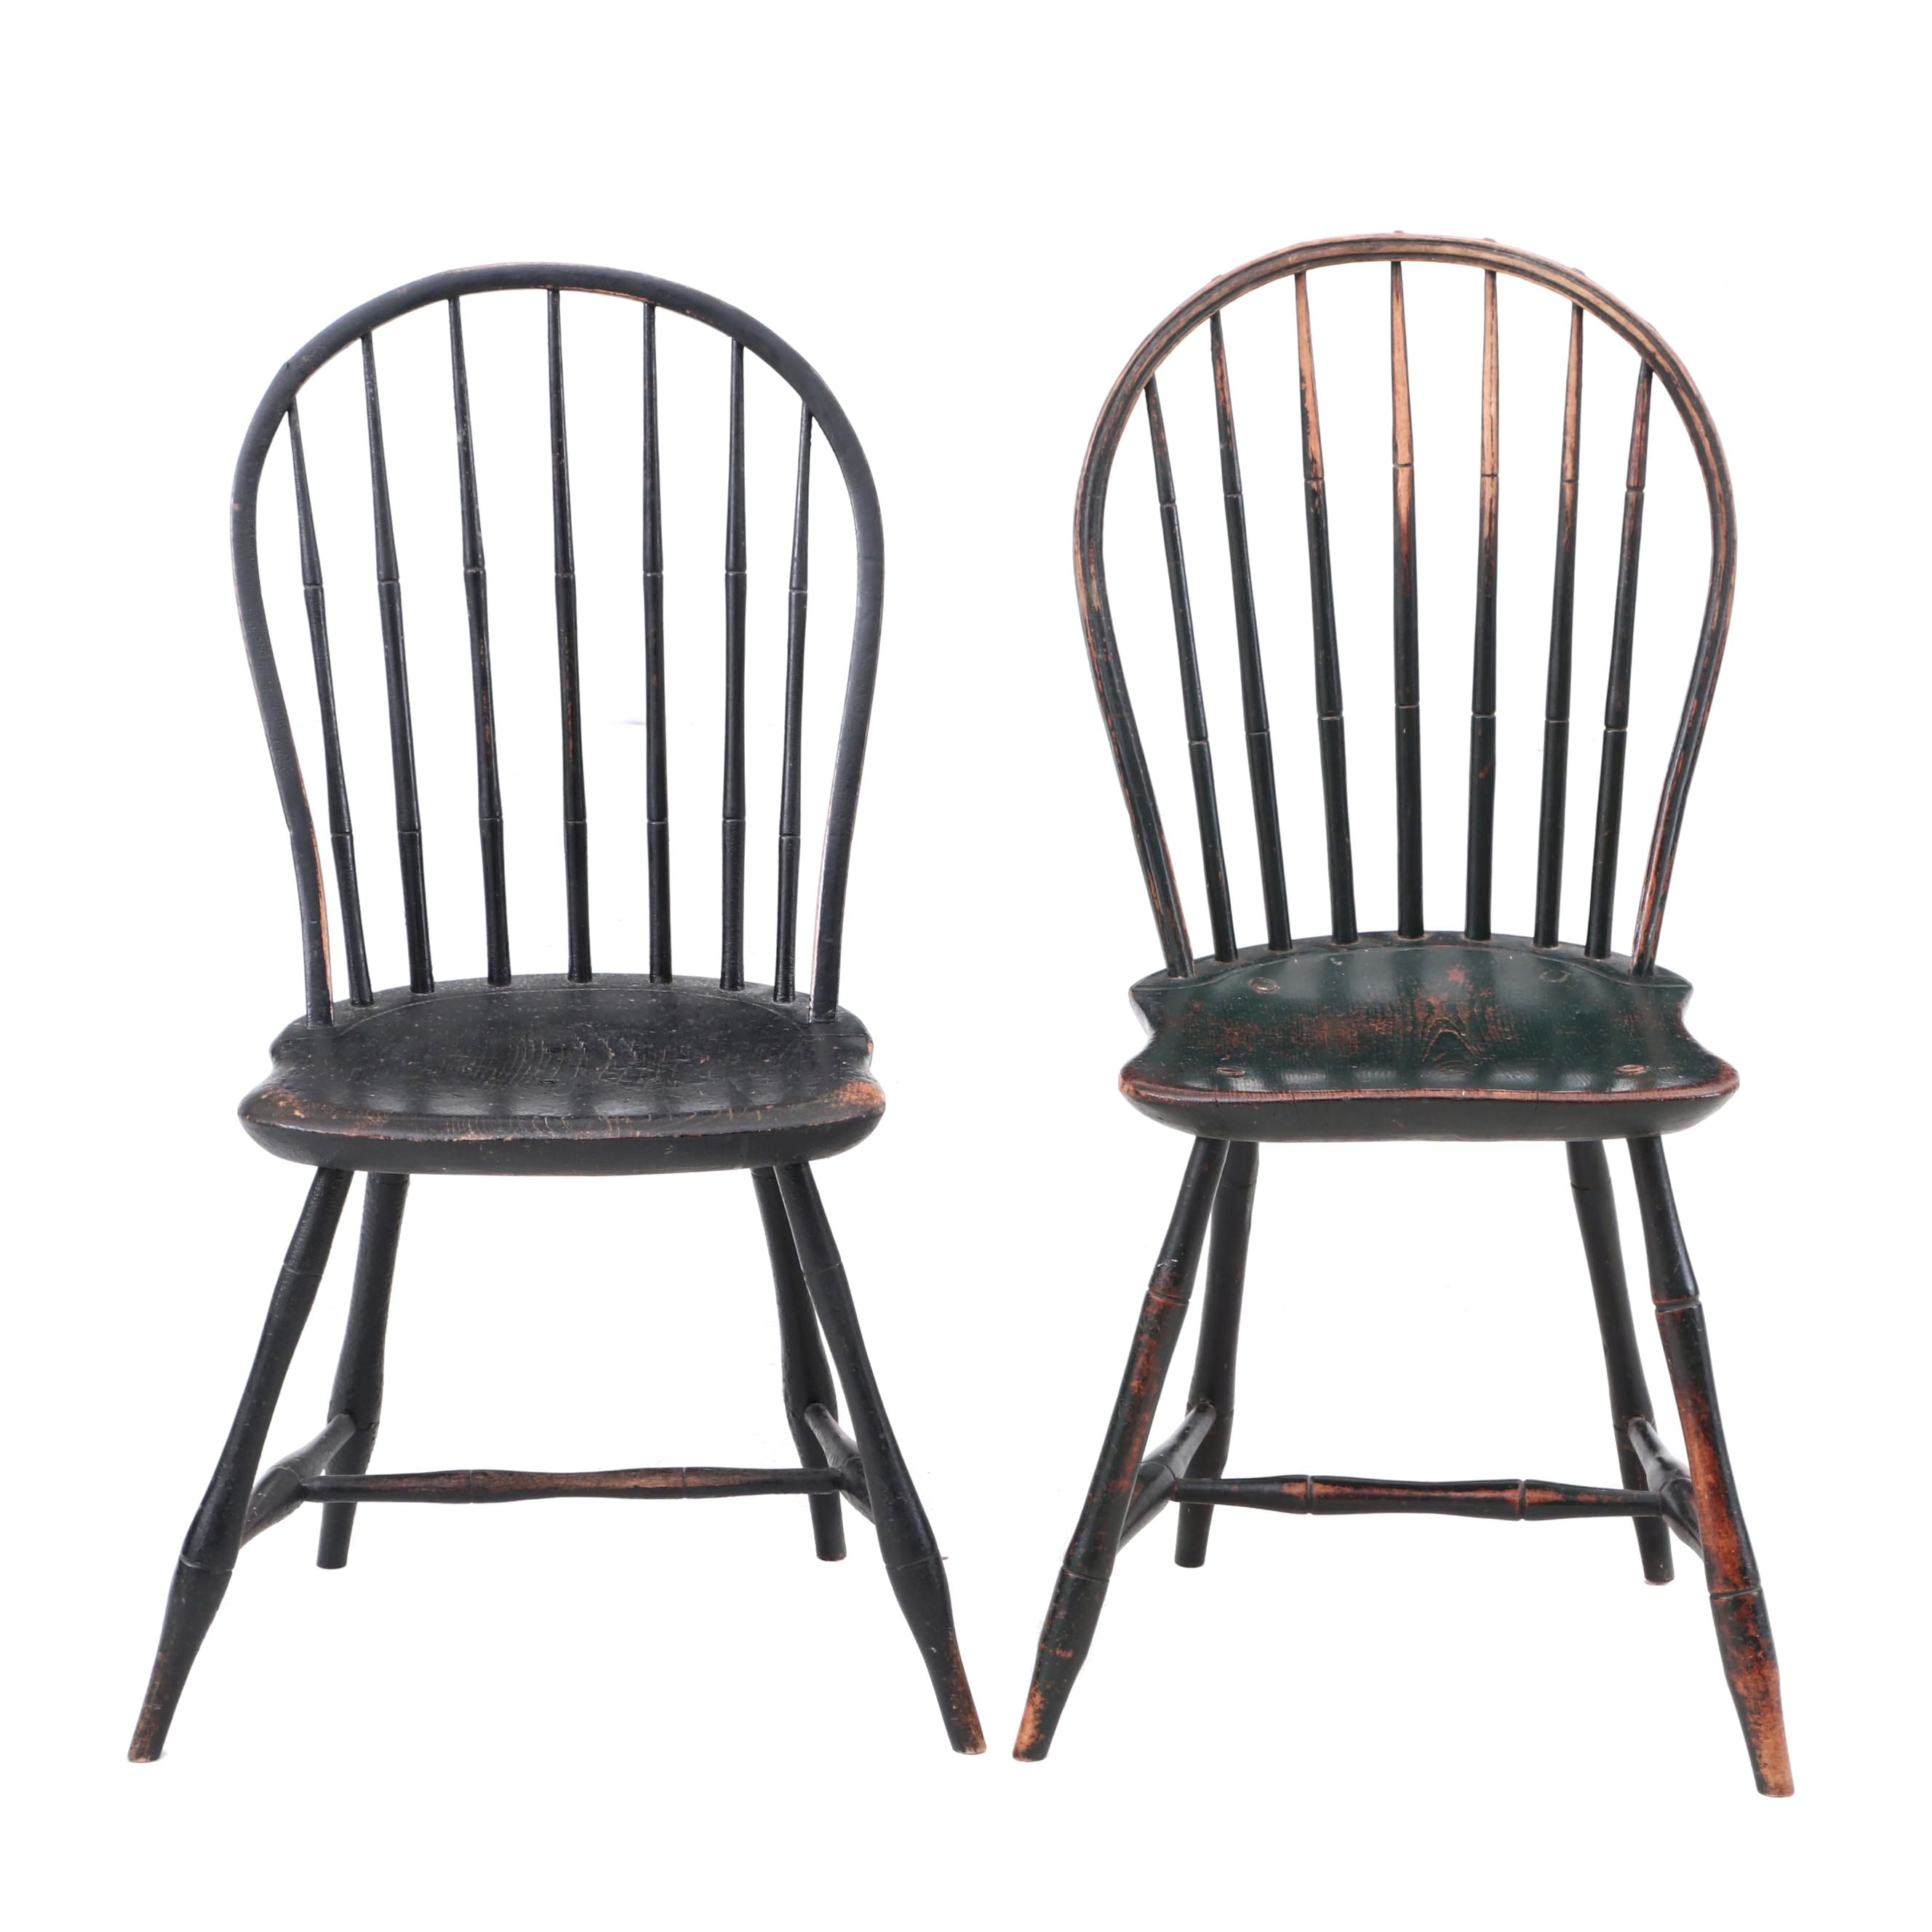 American Early 19th Century Bow-Back Windsor Chairs